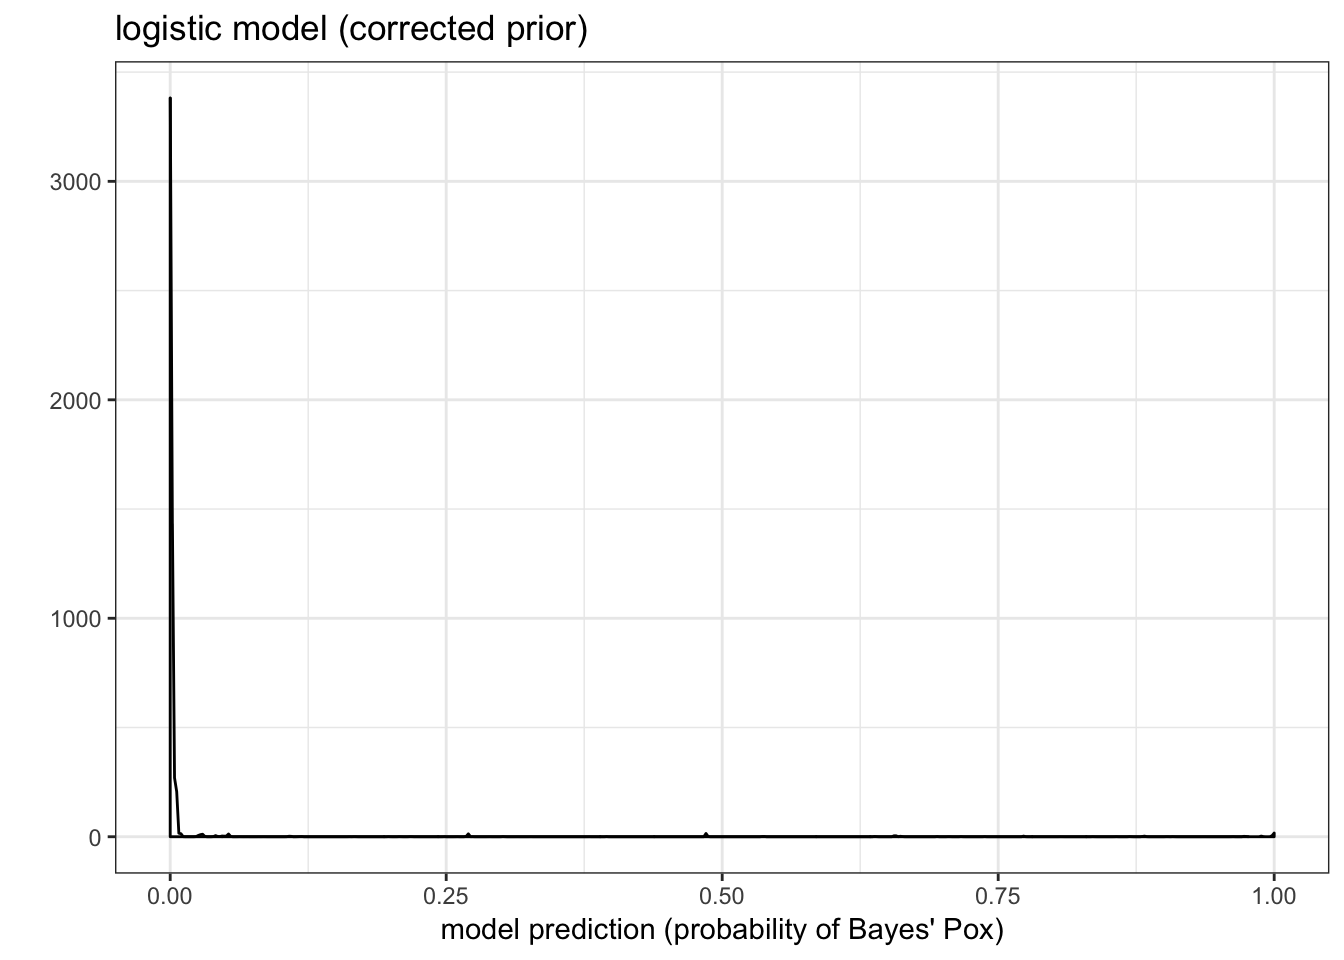 Distribution of predictions after updating our prior to the correct one.